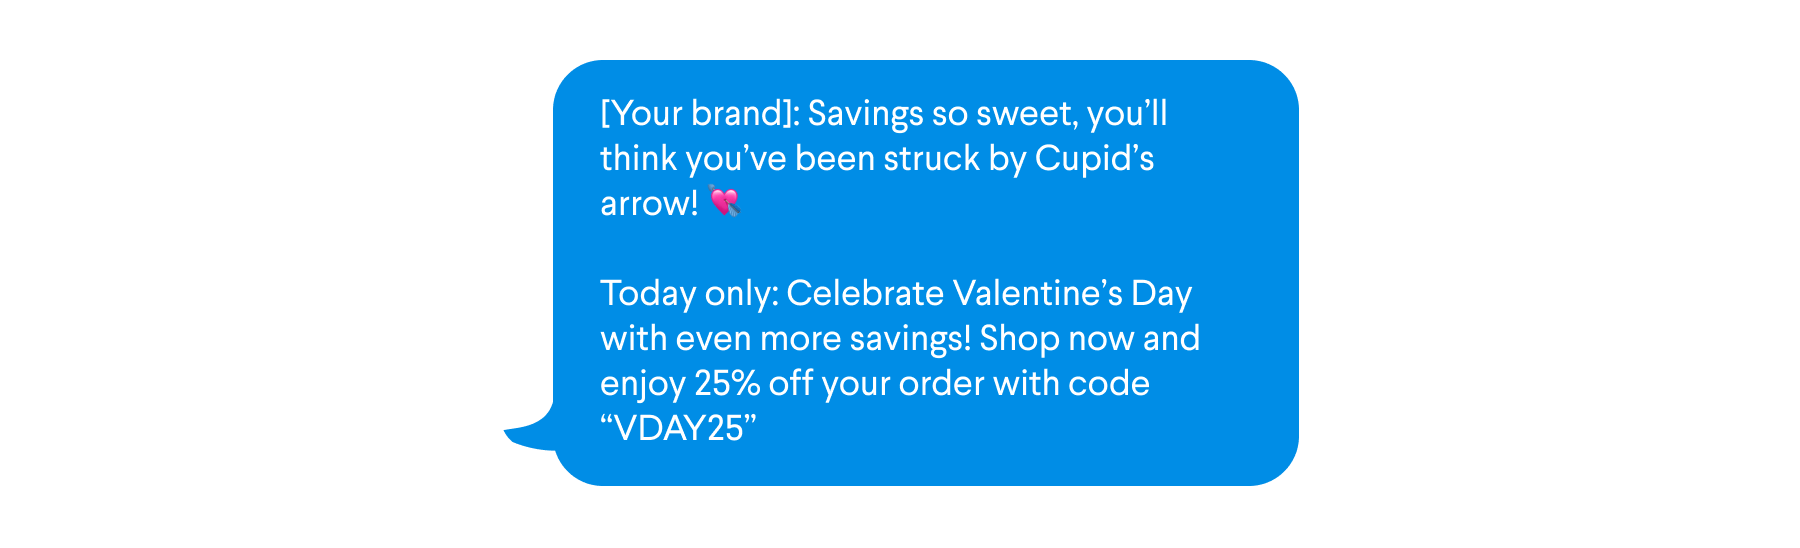 Sample text for SMS campaign to non-click subscribers featuring new Valentine's Day promo code